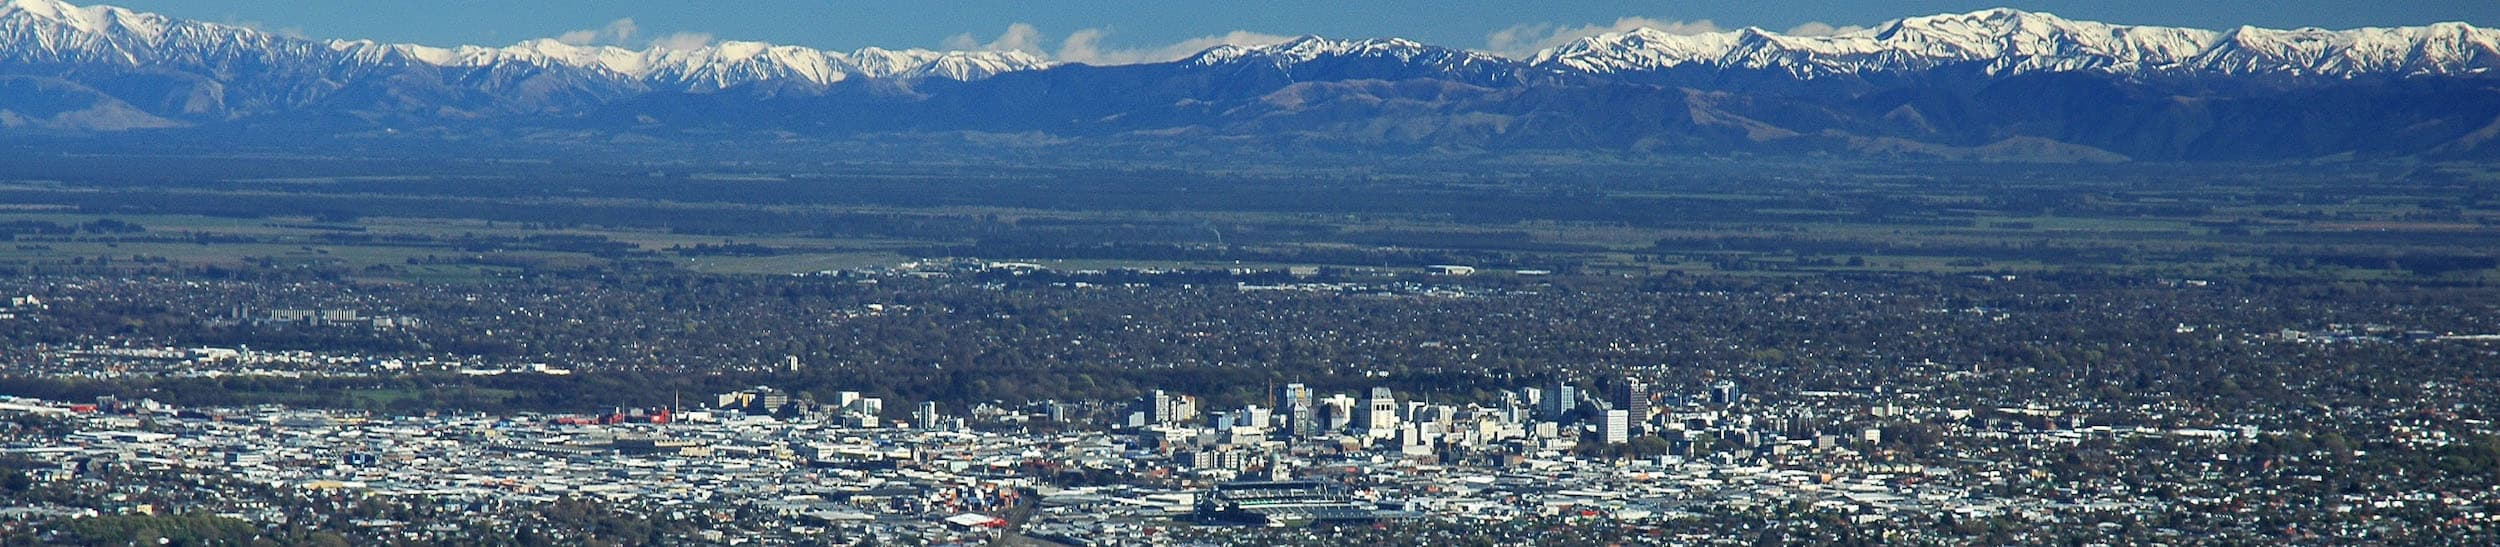 Skyline of Christchurch